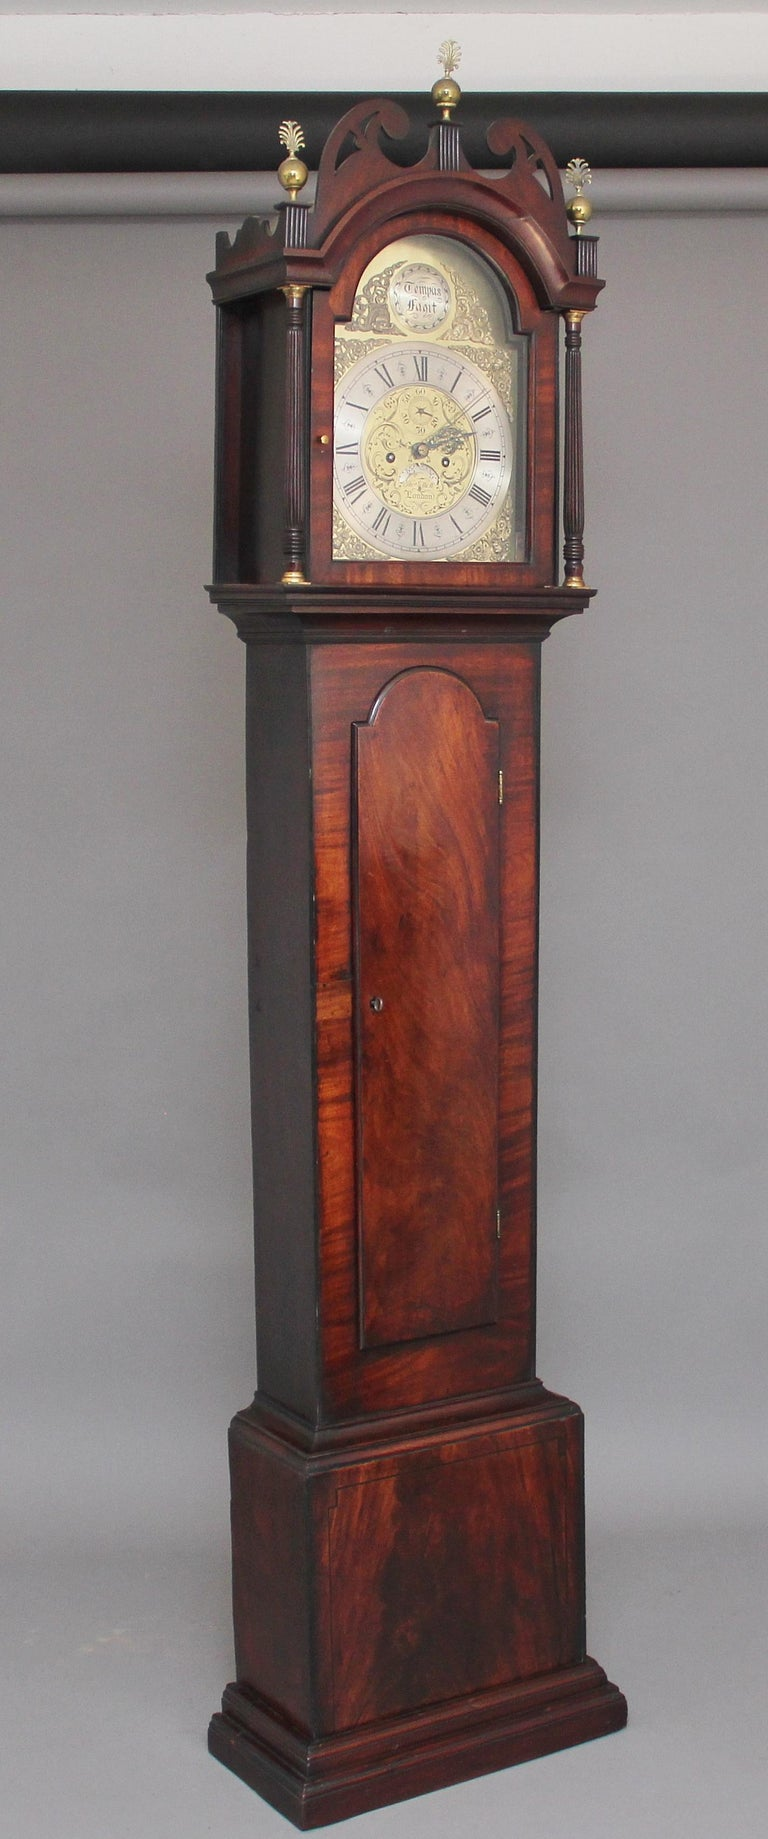 18th century mahogany long case clock by Thomas Elliott of London, it has an arch dial with a brass face and silvered chapter ring, the hood has turned and fluted columns either side of the door with brass capitals, the hood also has a lovely shaped